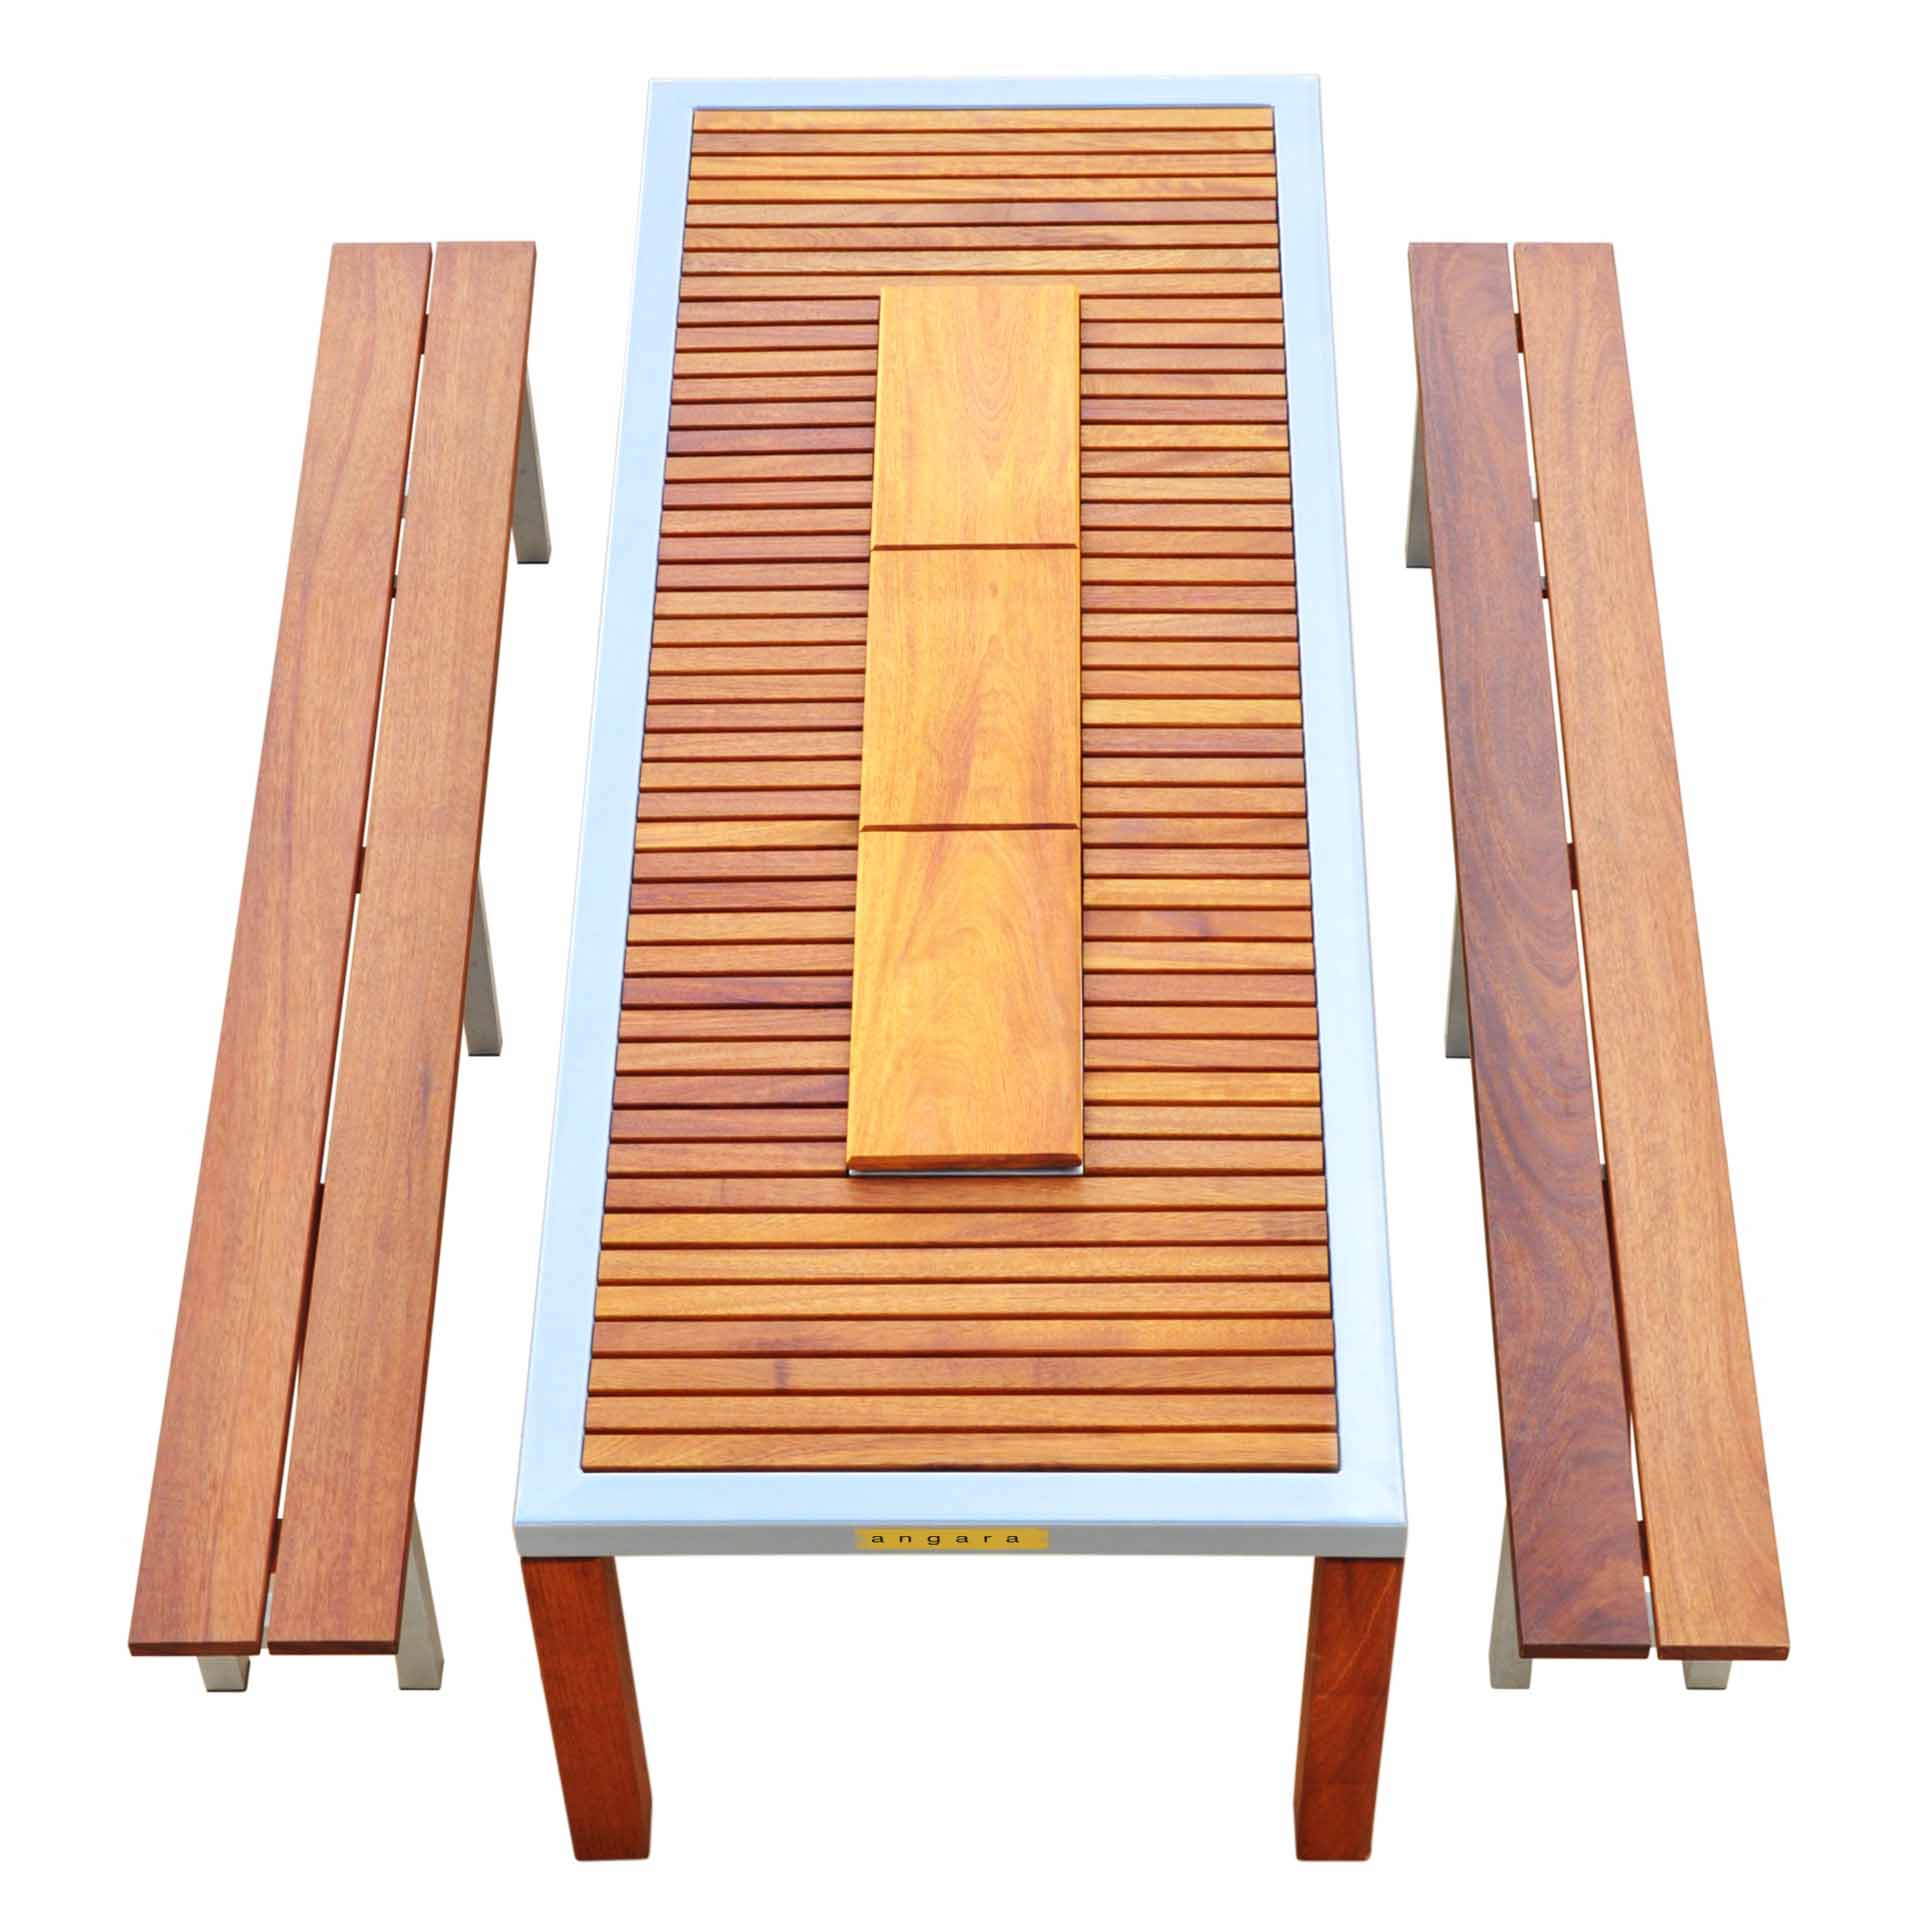 Angara Maximus grill table with wood coverings on grill sections